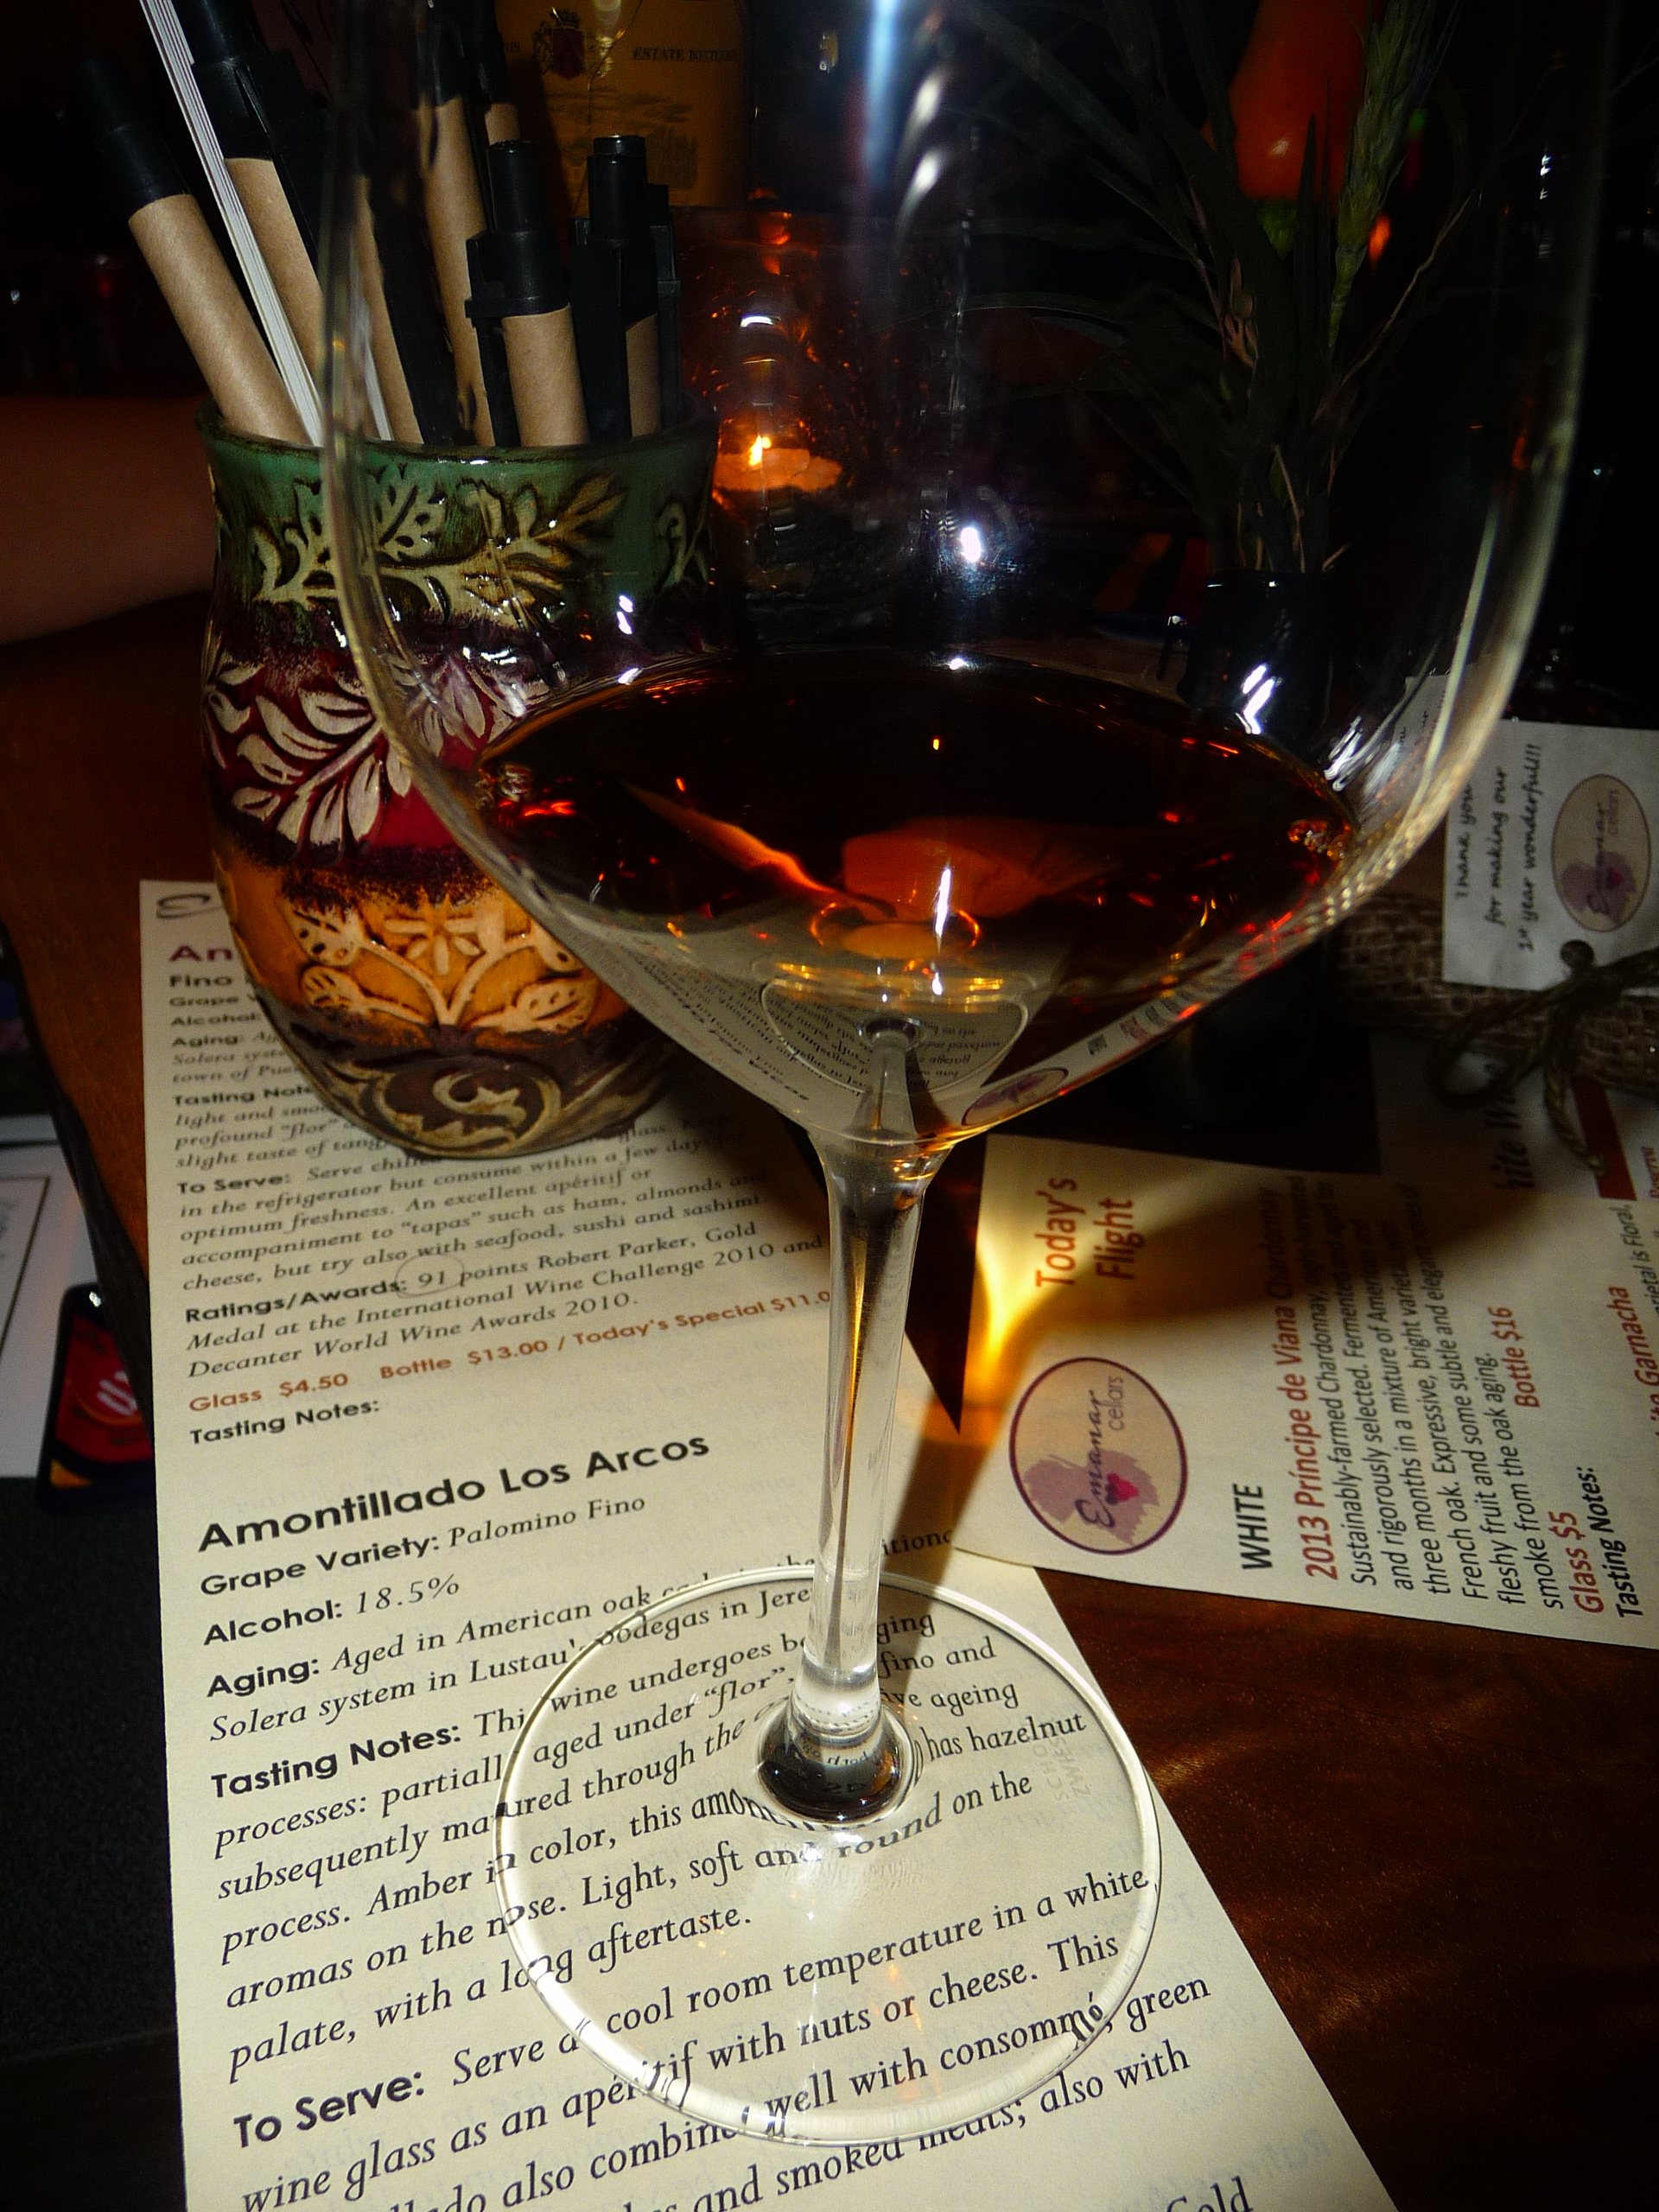 The amber color of this Amontillado Los Arcos Sherry is easy to sip as an aperitif or a hearty cheese plate